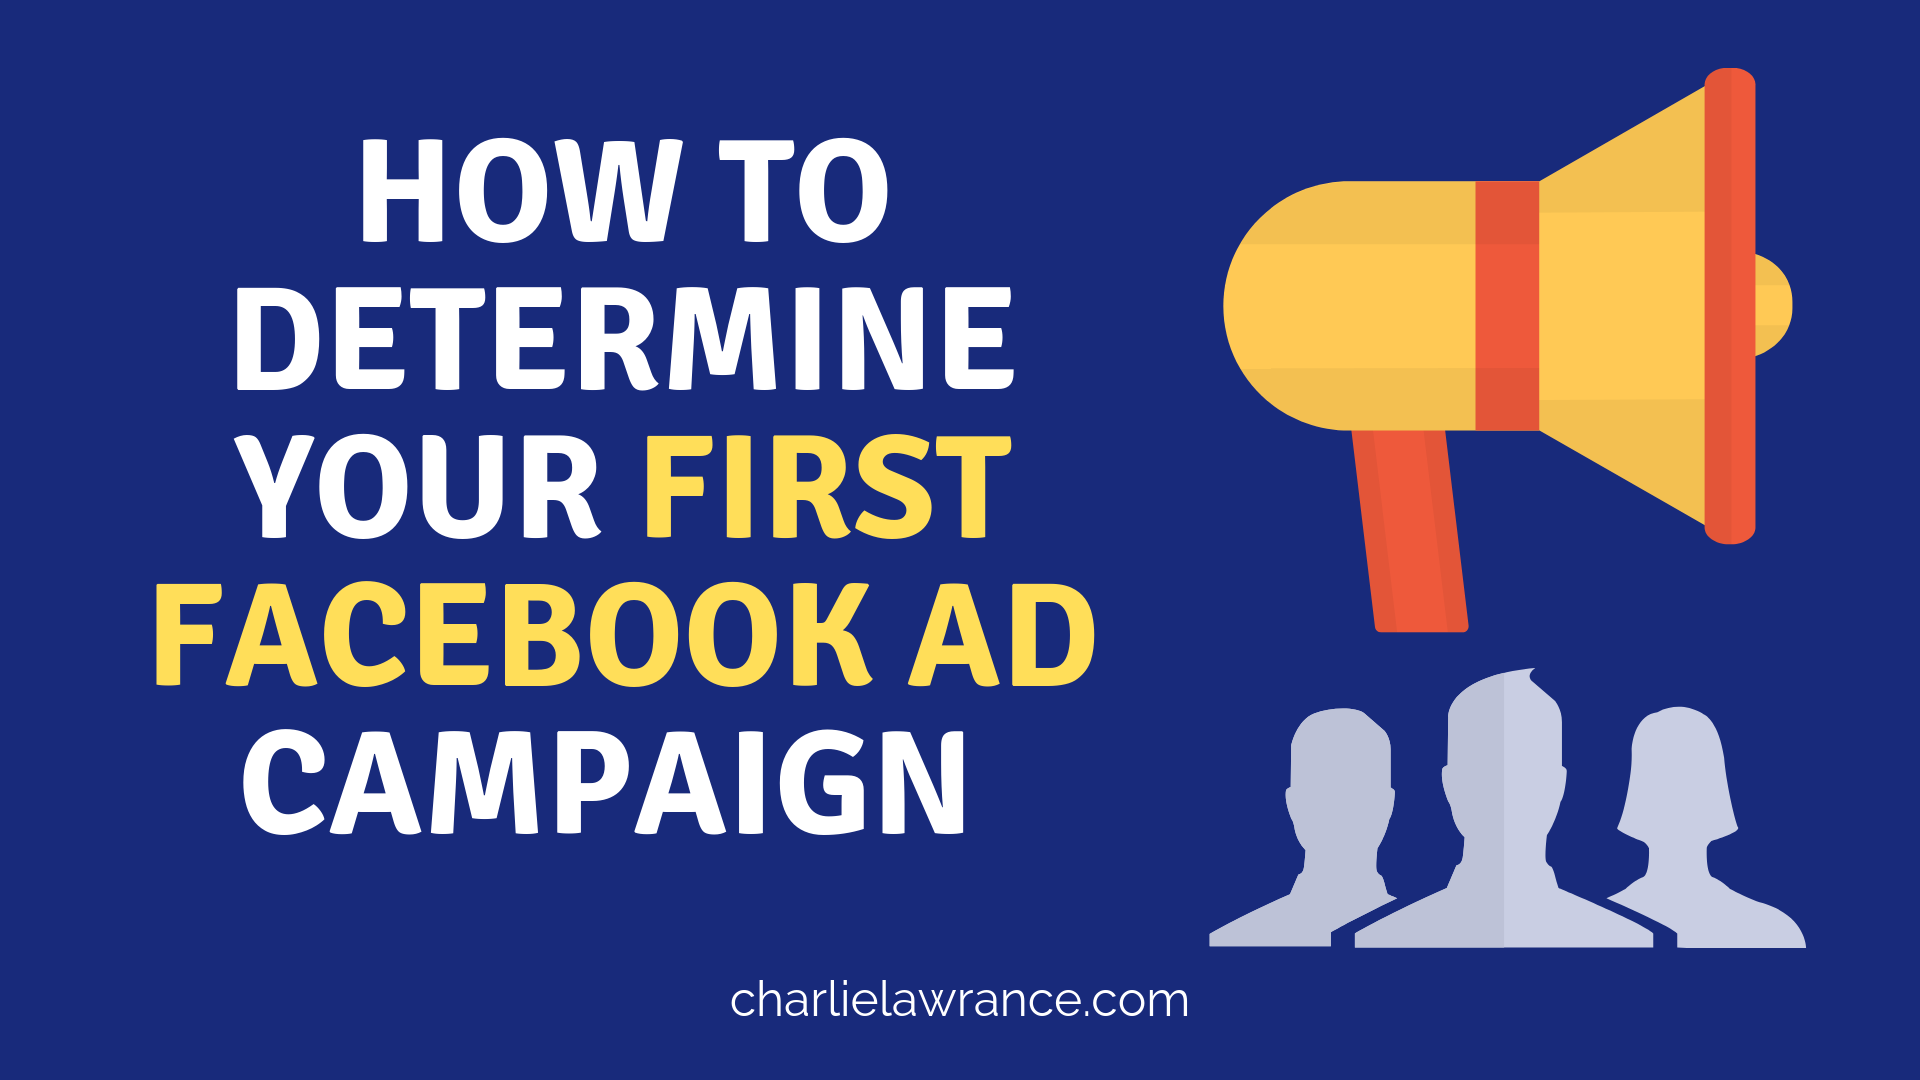 How to determine your first Facebook ad campaign